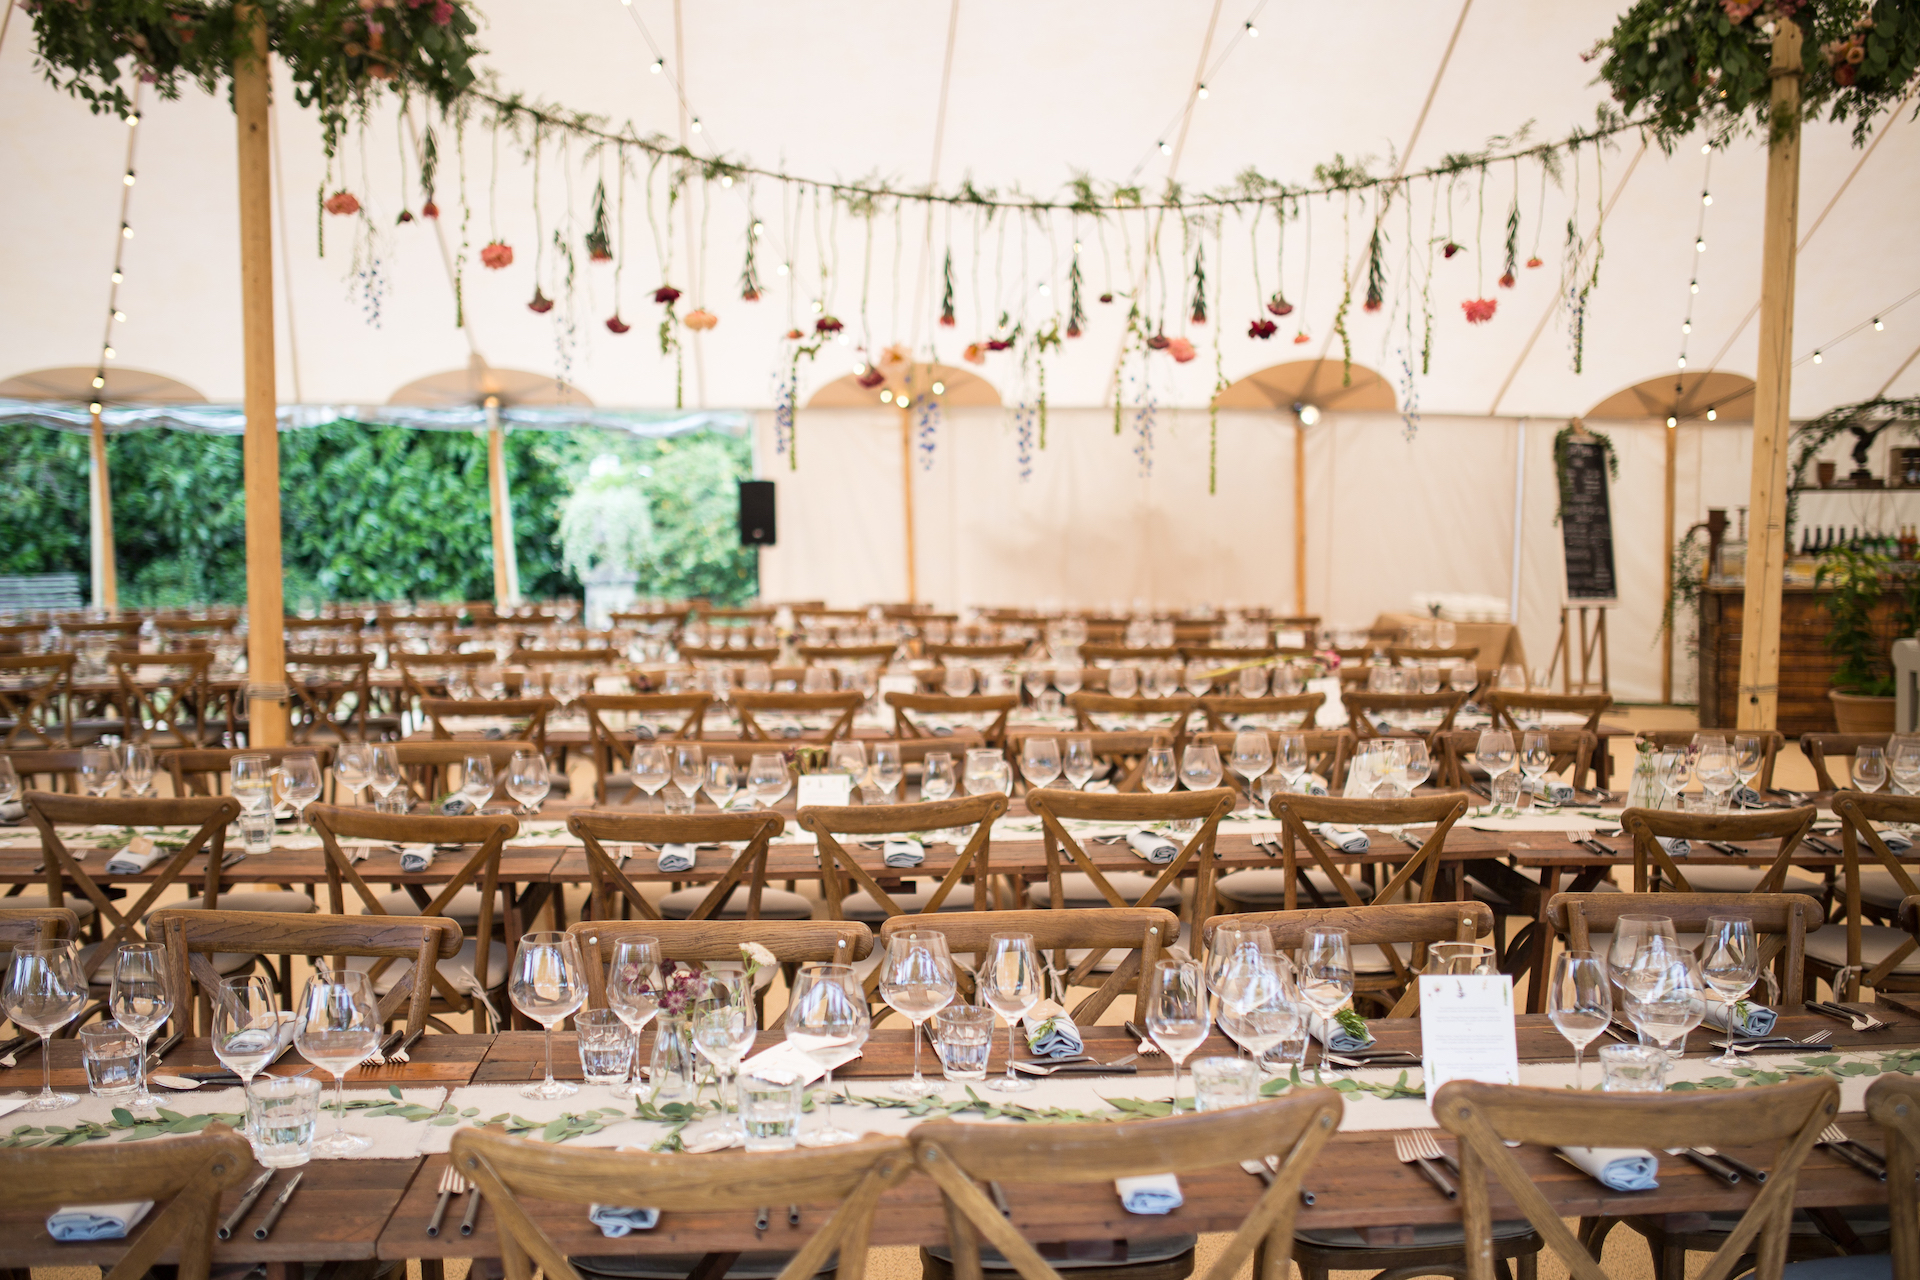 PapaKåta Sperry Tent Wedding at Ella & George's family home in Sussex- Sperry Tent interior by Oliver Photography